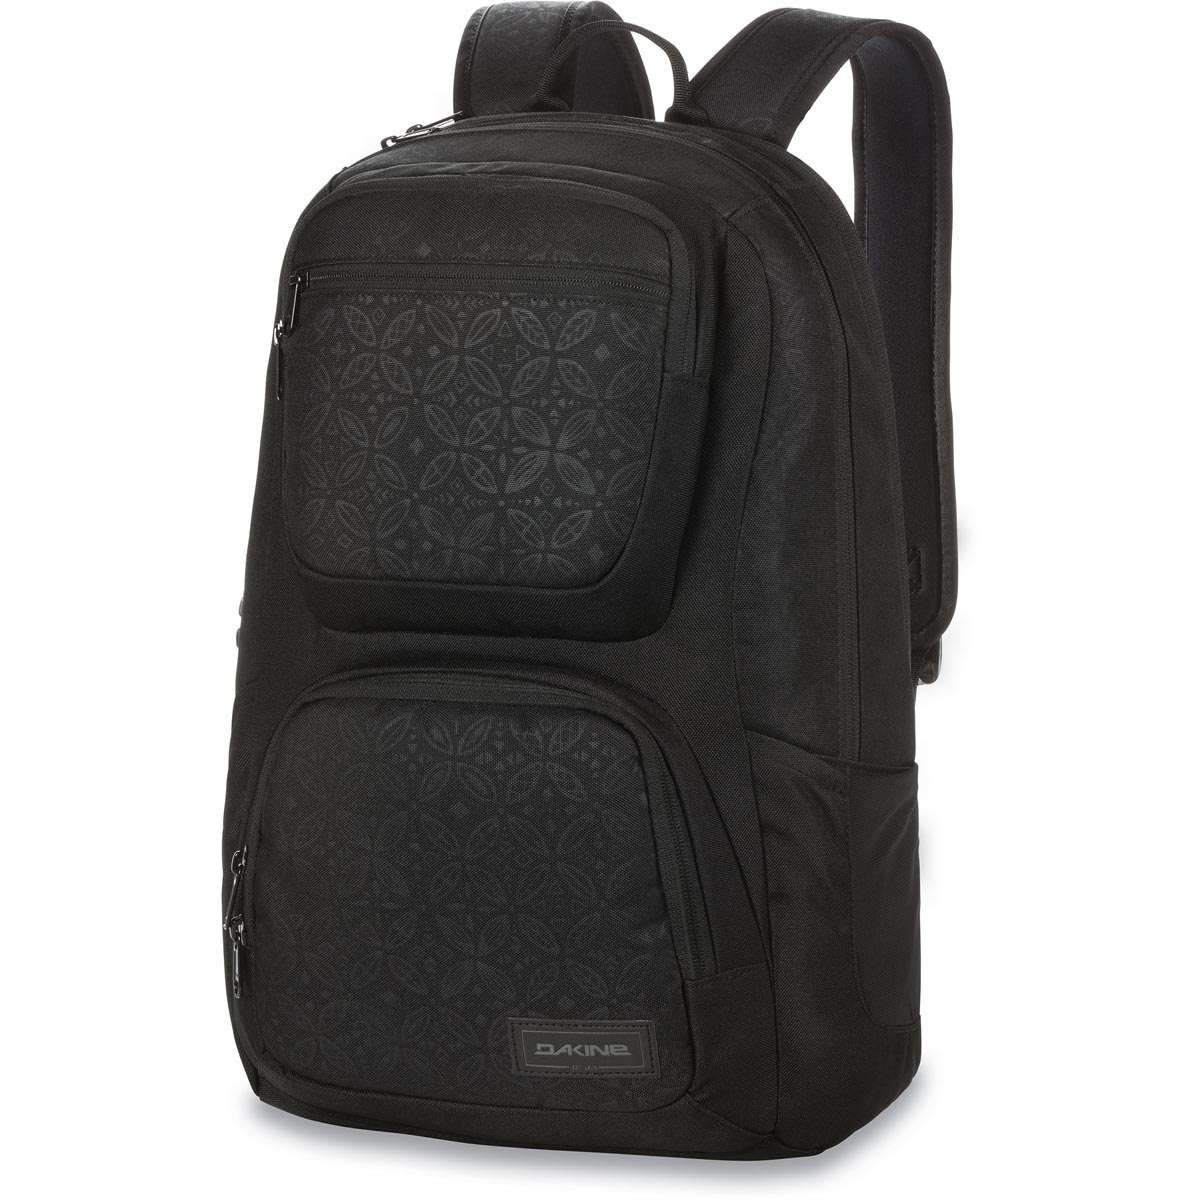 Dakine Jewel Laptop Backpack- Fenix Toulouse Handball f146440d18216